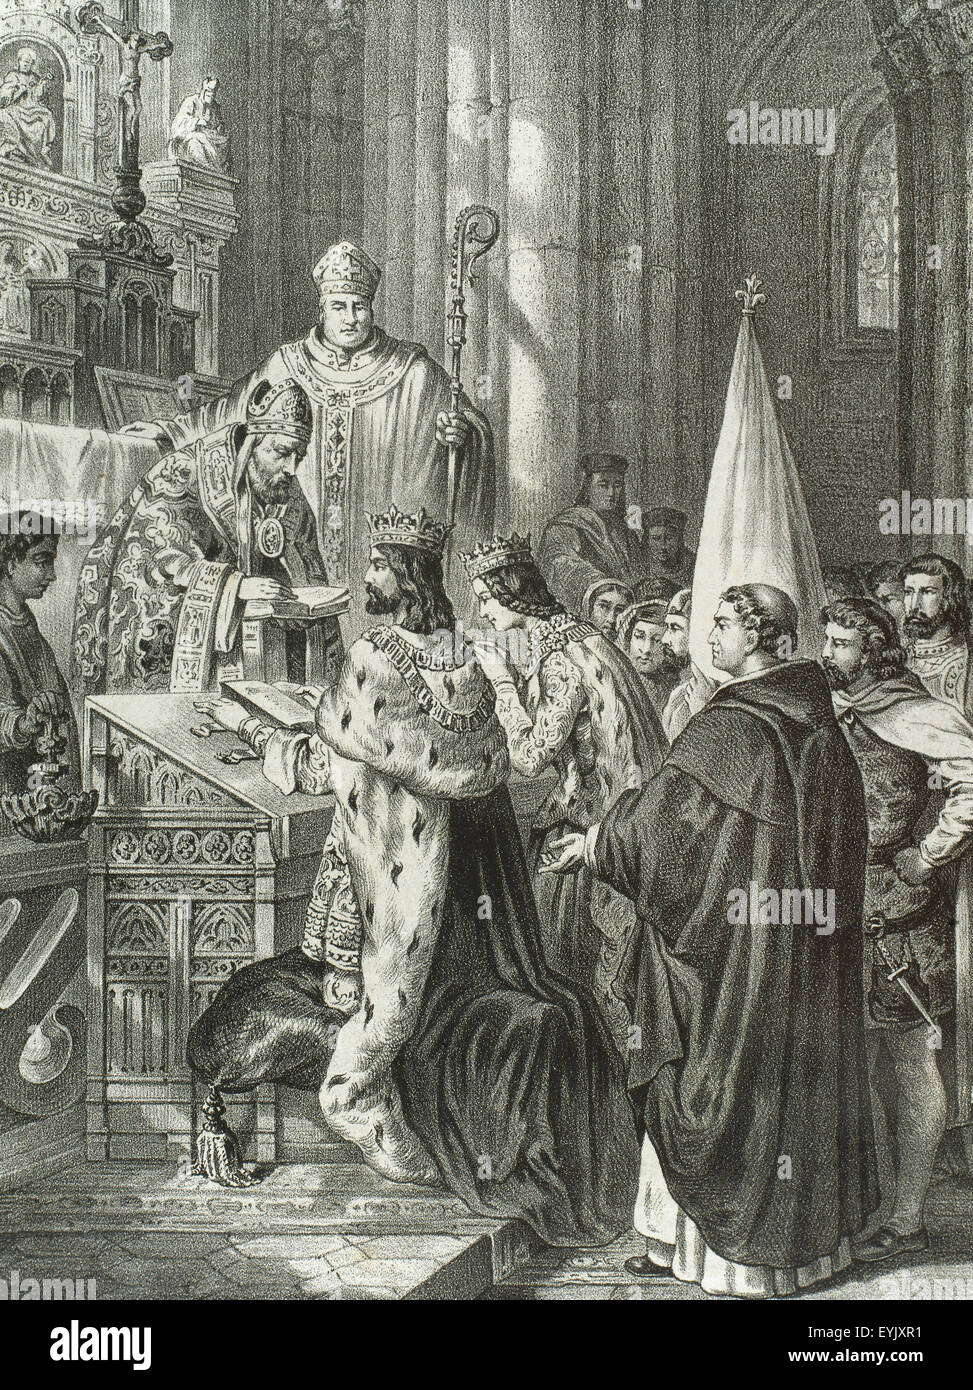 Alfonso III (c.848-910). Called the Great. King of Asturias. Wedding between king Alfonso and Jimena of Pamplona Stock Photo